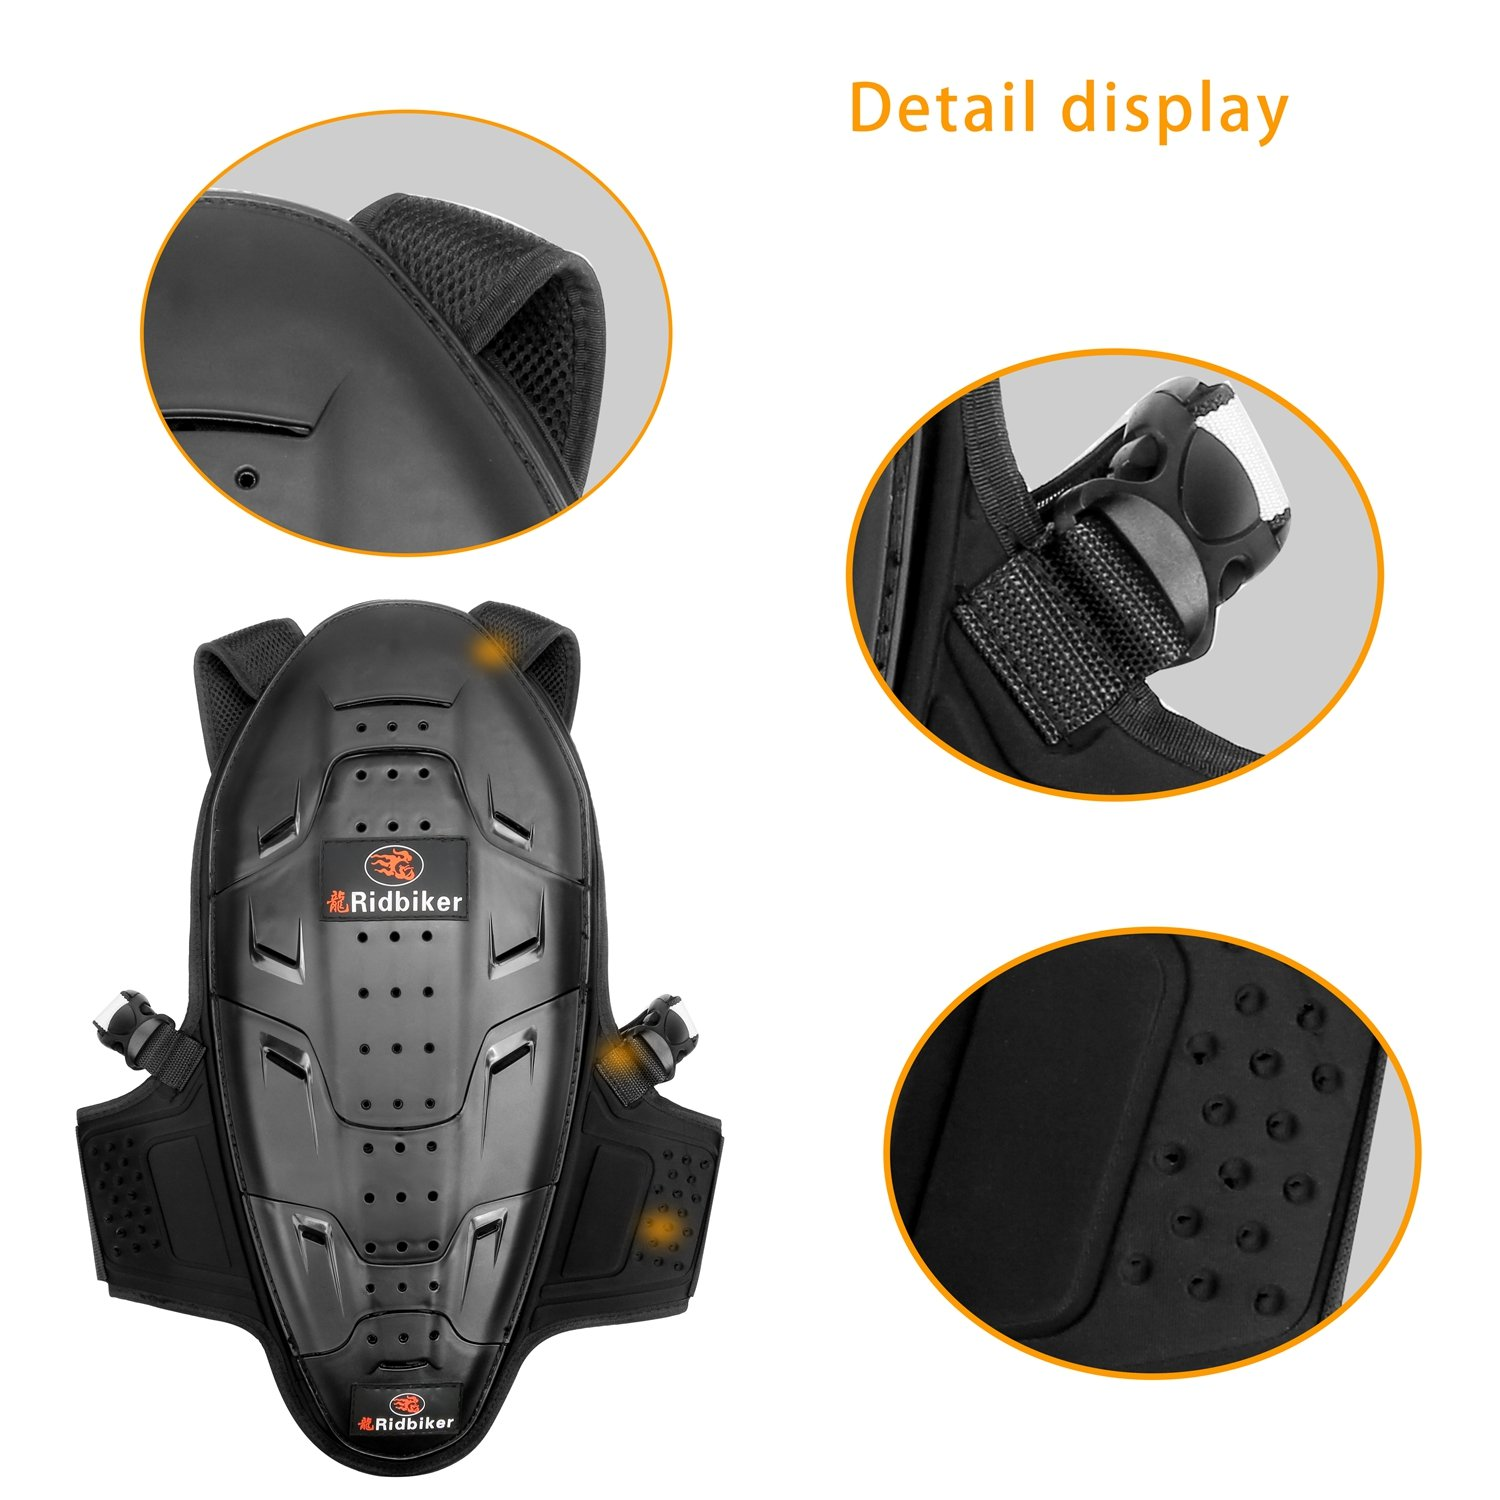 RIDBIKER Motorcycle Bicycle Back & Spine Protector Motocross Racing Spine Armor Skiing Riding Skating Anti-Fall Vest Protective Gear by RIDBIKER (Image #3)